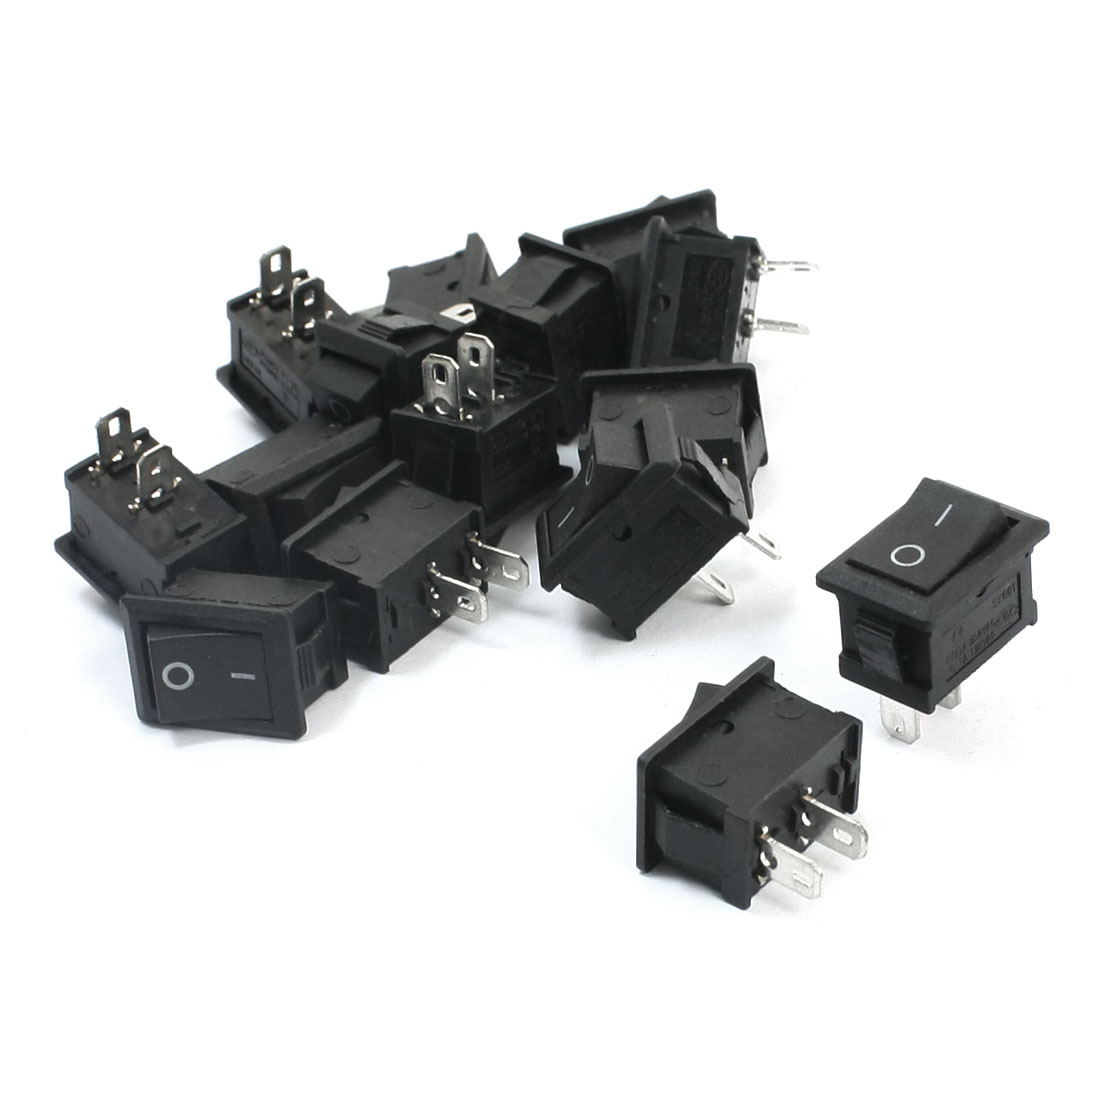 15Pcs SPST 2 Position ON/OFF 2 Soldering Pin Snap In Black Button Rectangle Boat Rocker Switch AC250V 6A AC125V 10A 15mmx21mm